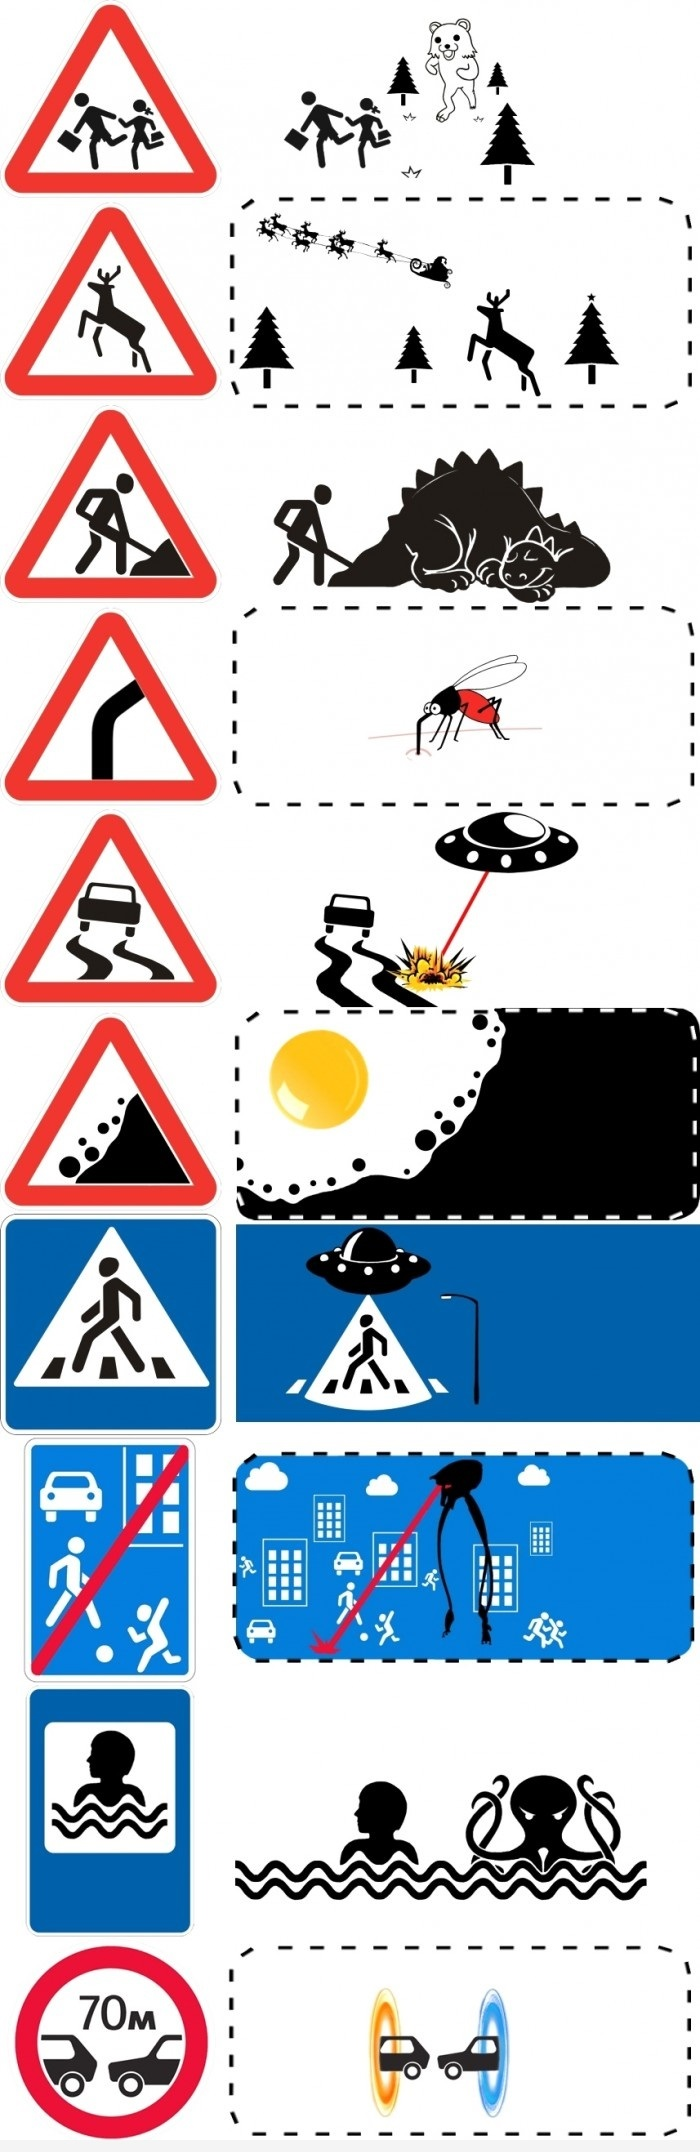 warning-signs